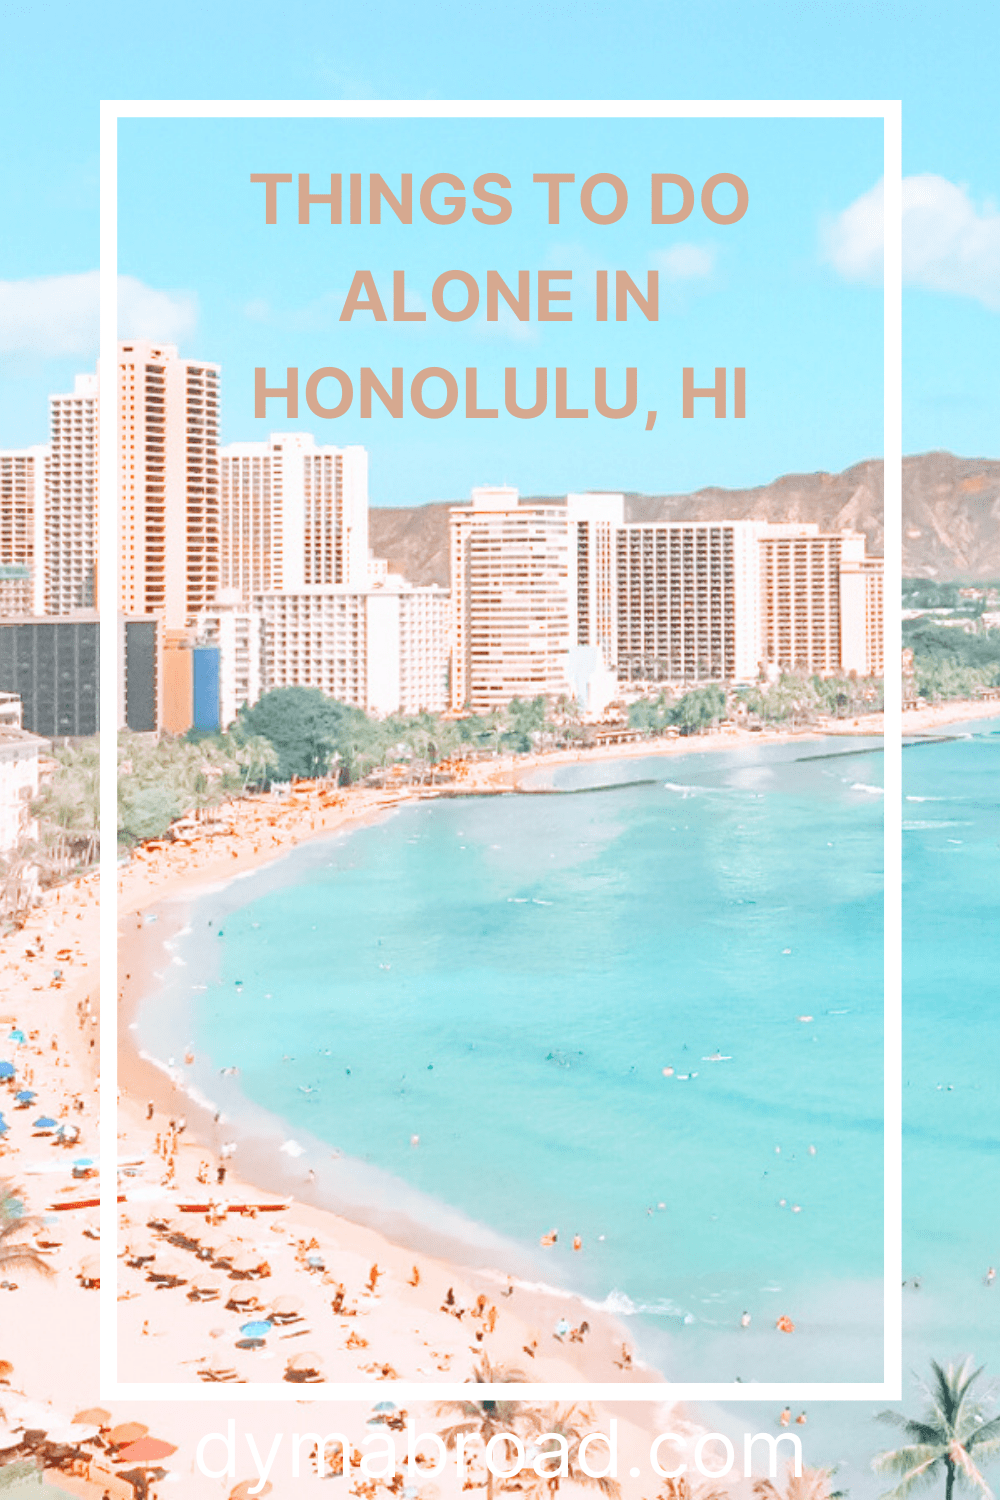 Things to do alone in Honolulu Pinterest image